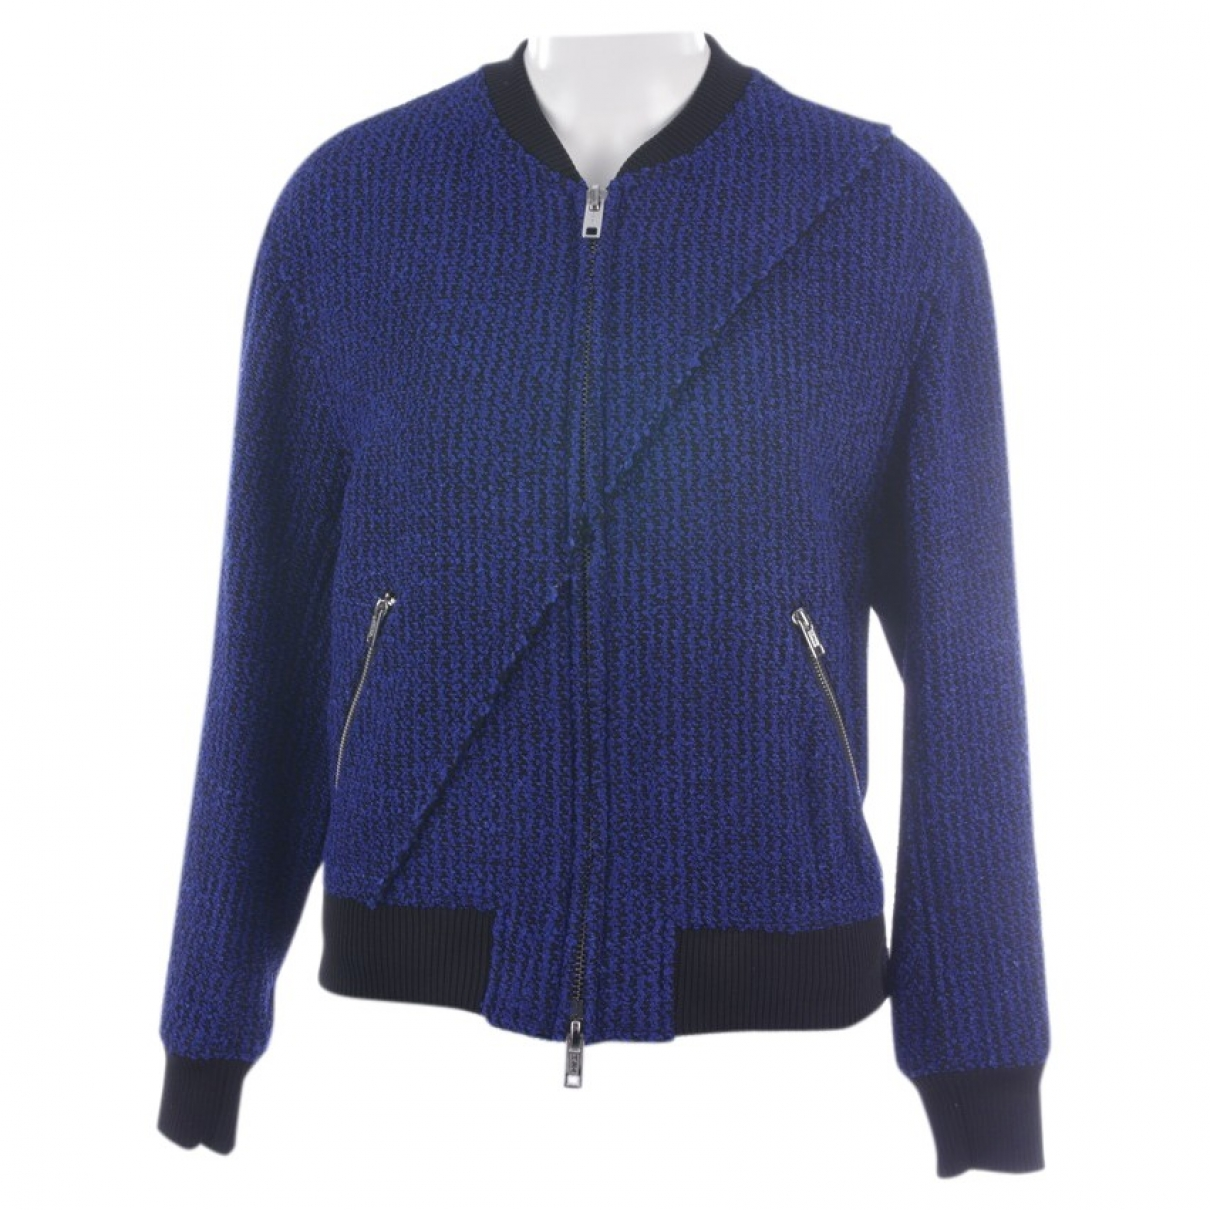 3.1 Phillip Lim \N Jacke in  Blau Synthetik